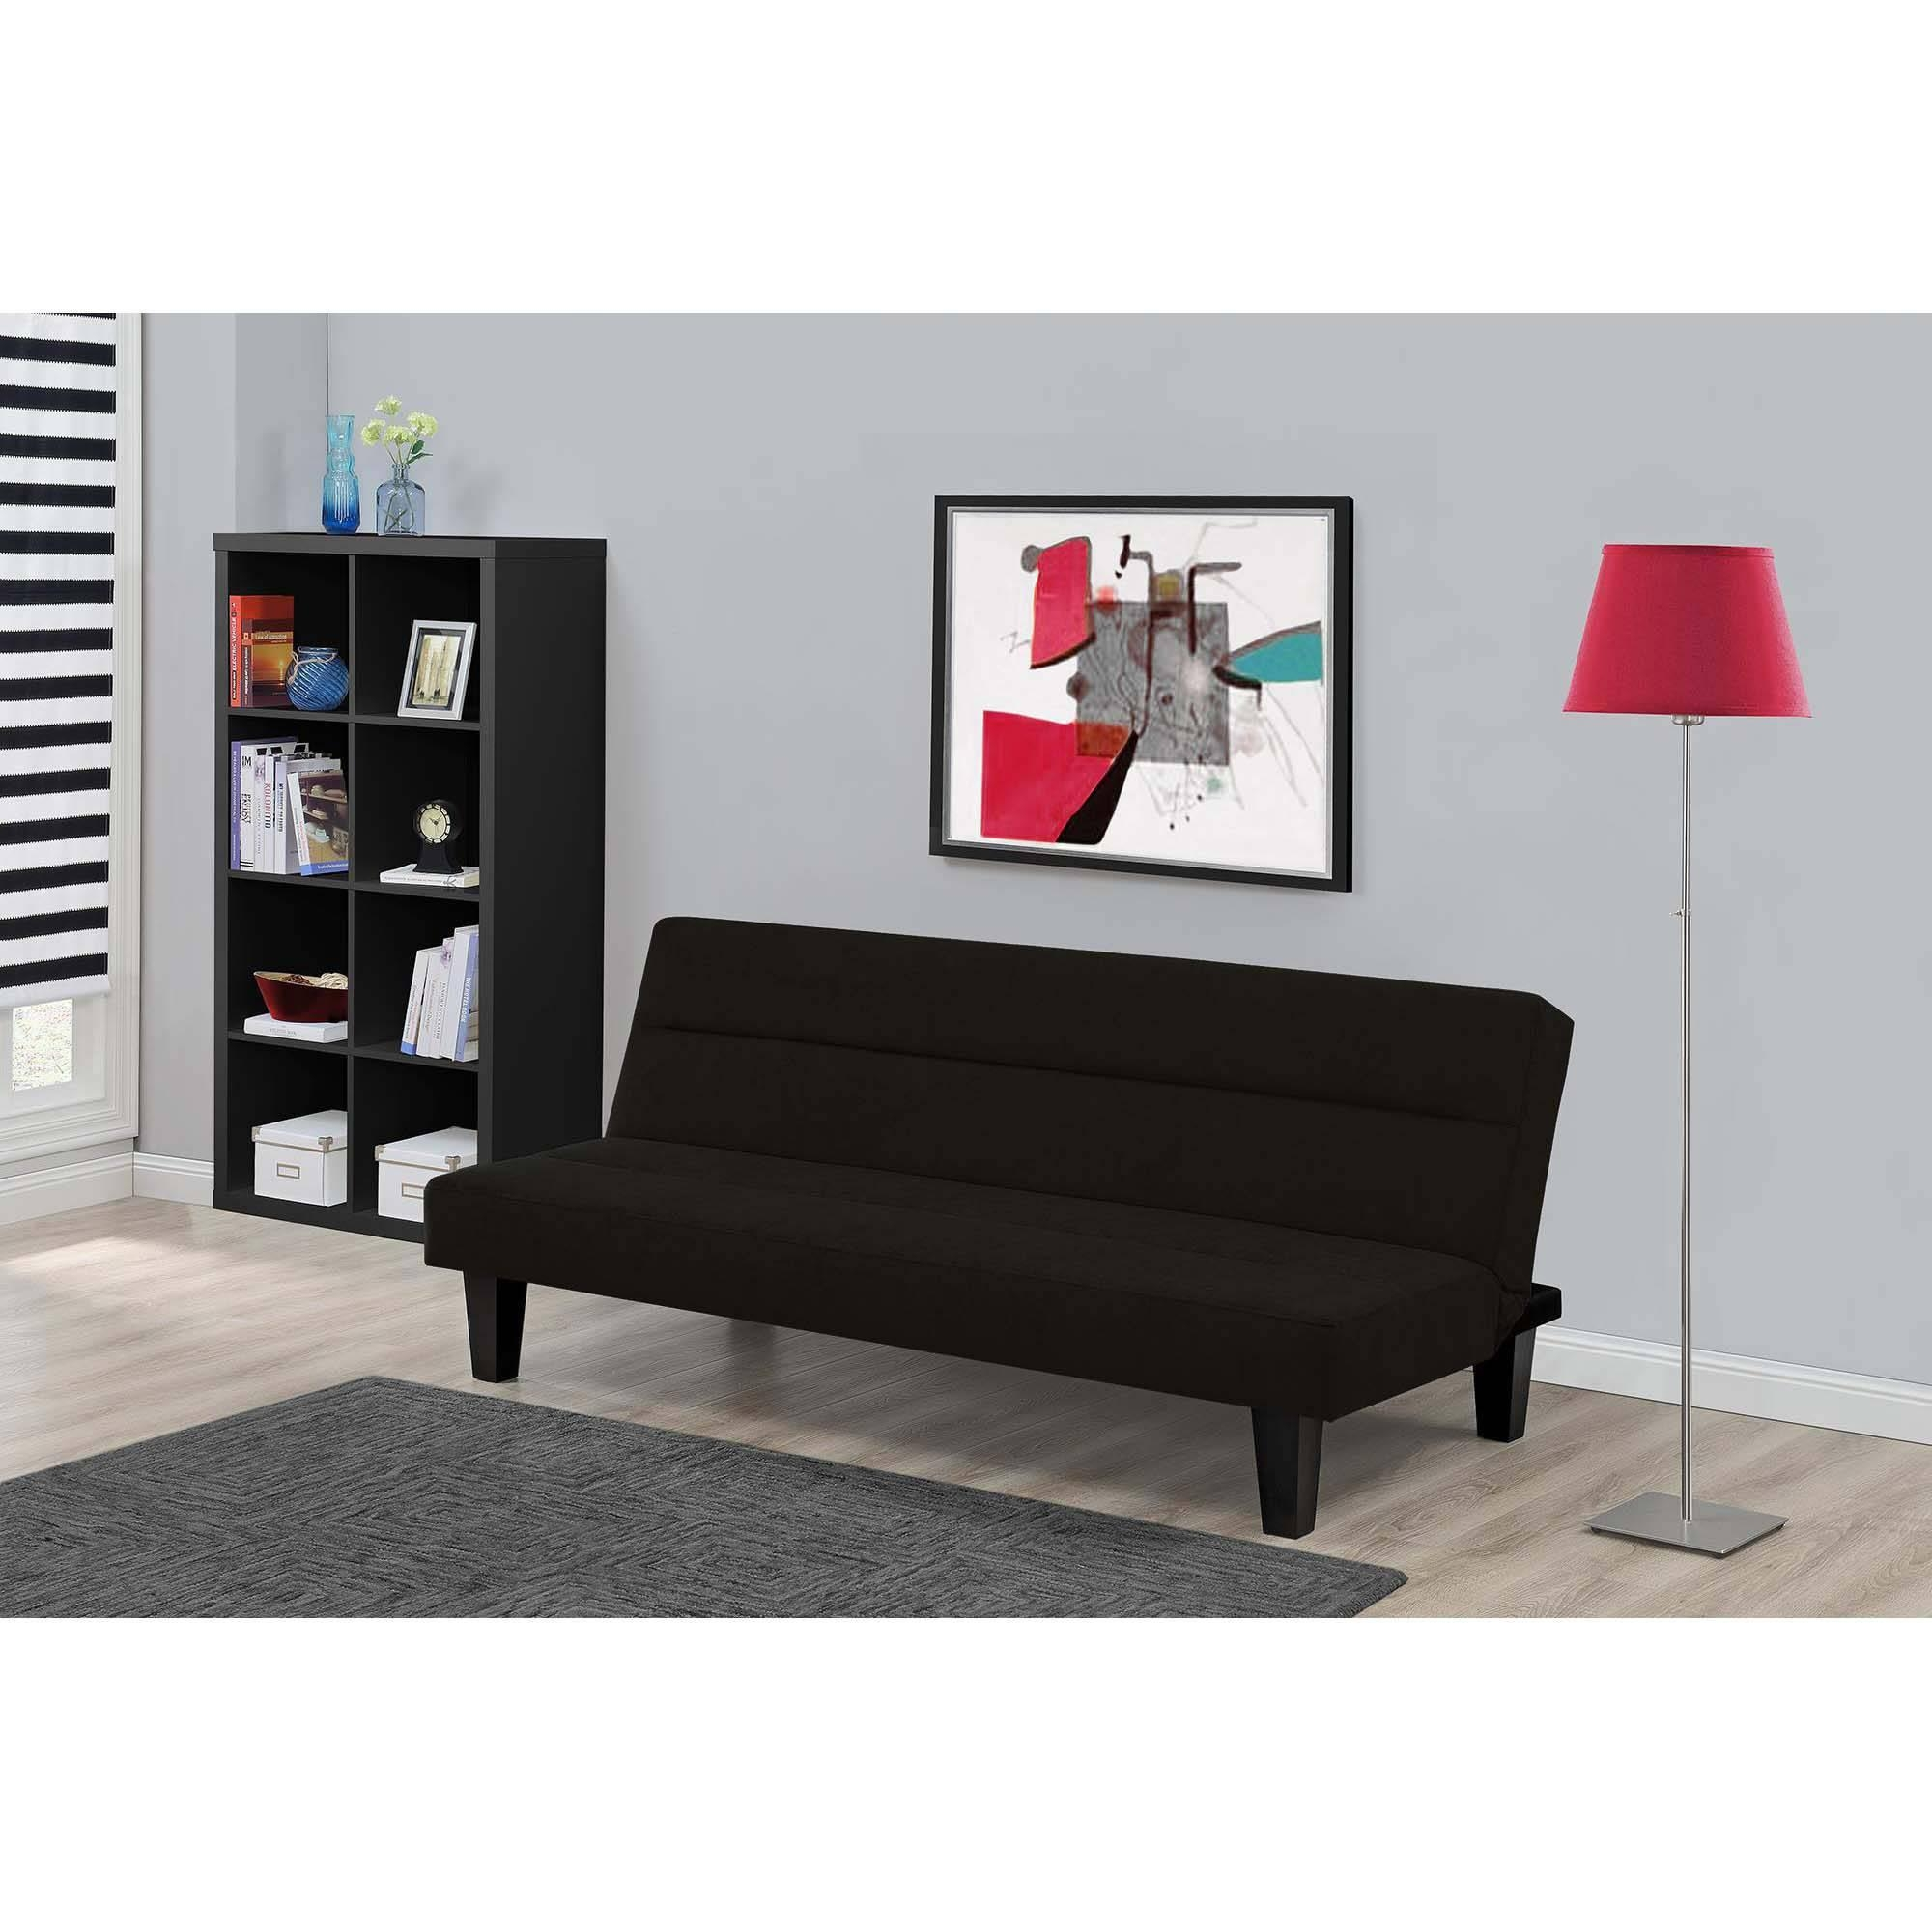 Microfiber Futon Folding Sofa Bed Couch Mattress & Storage For Wallmart Sofa (View 9 of 20)